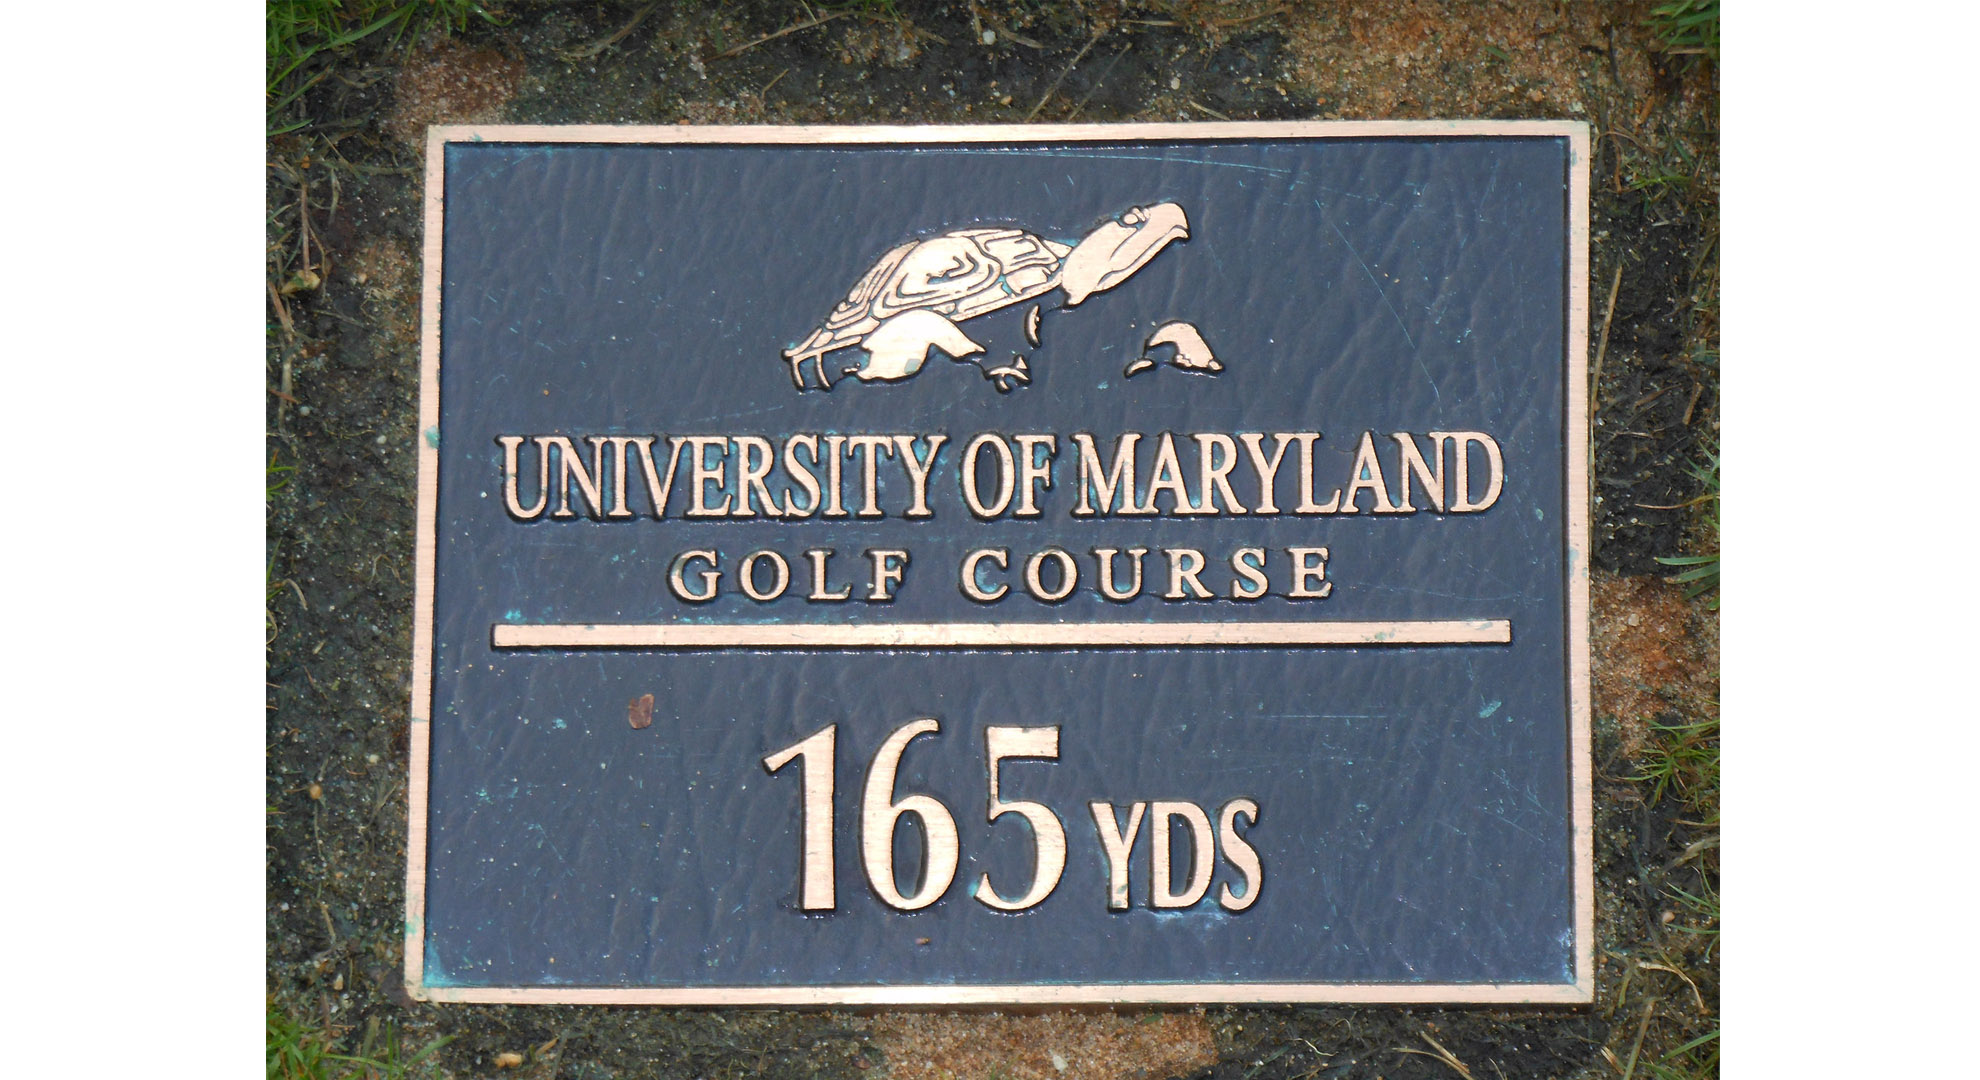 Yardage Plaques on Par 3s